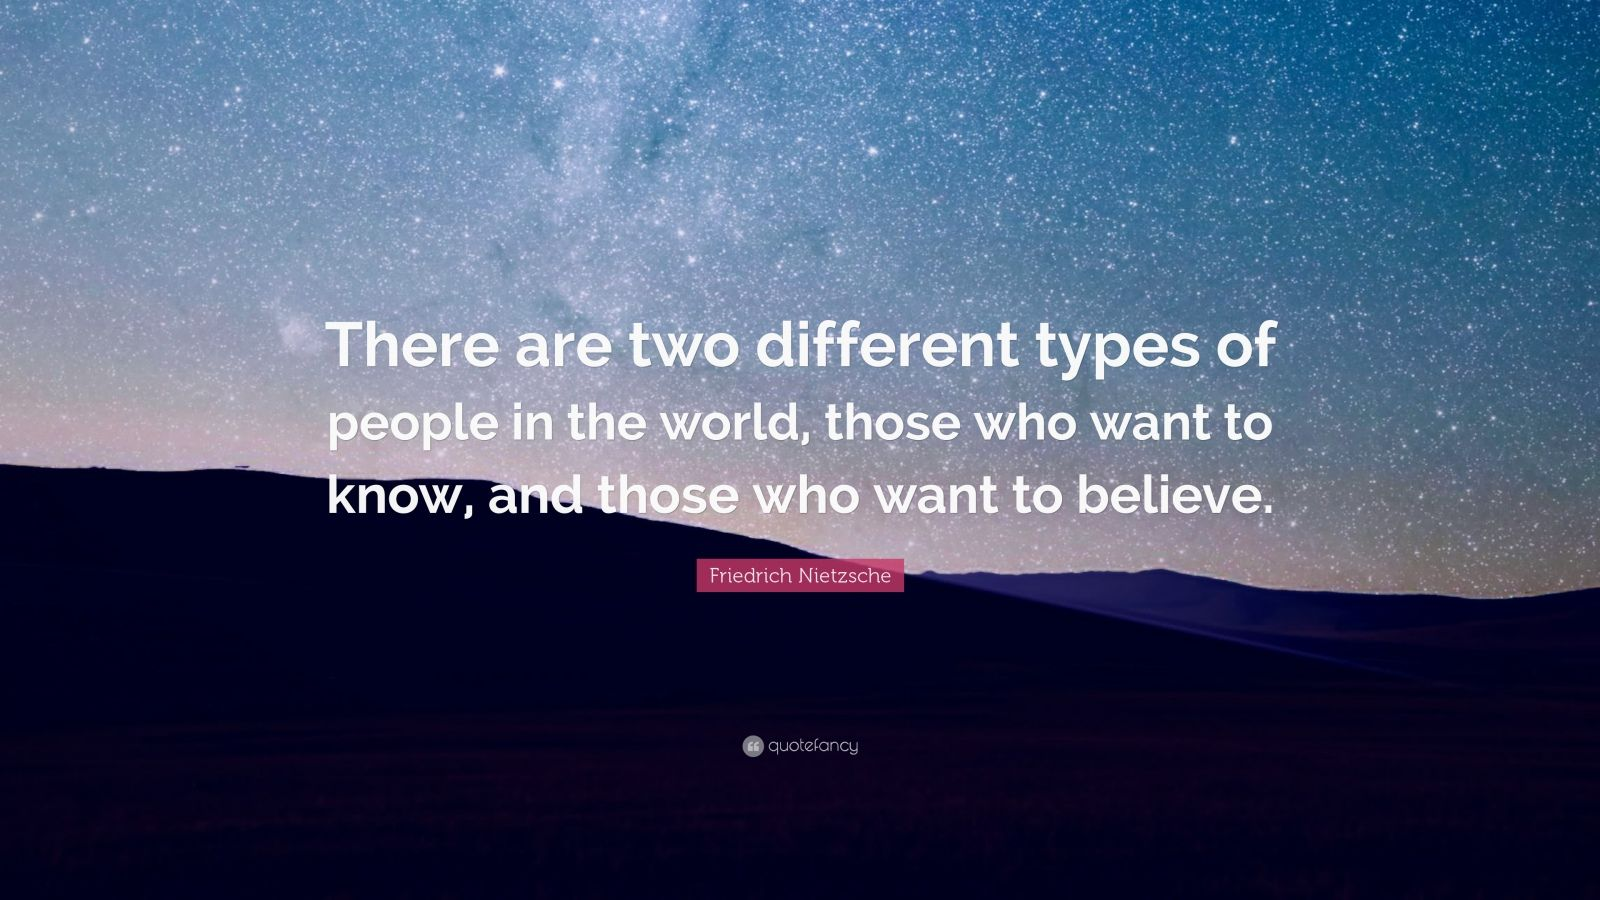 Essay in people there two type world